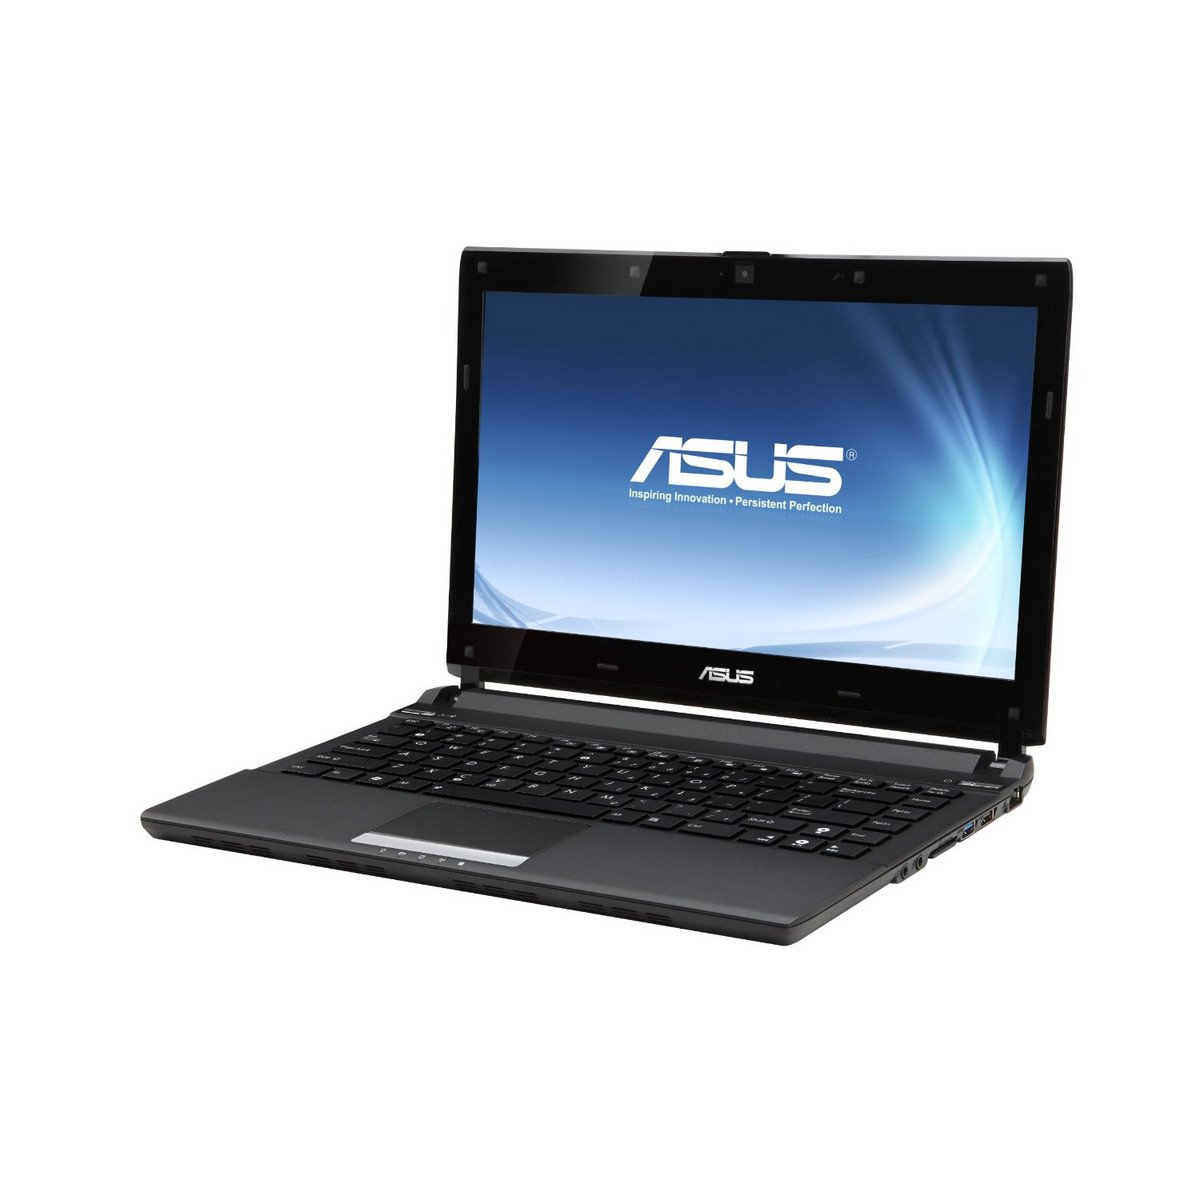 ASUS U36SG NOTEBOOK ATHEROS BLUETOOTH WINDOWS 8.1 DRIVER DOWNLOAD